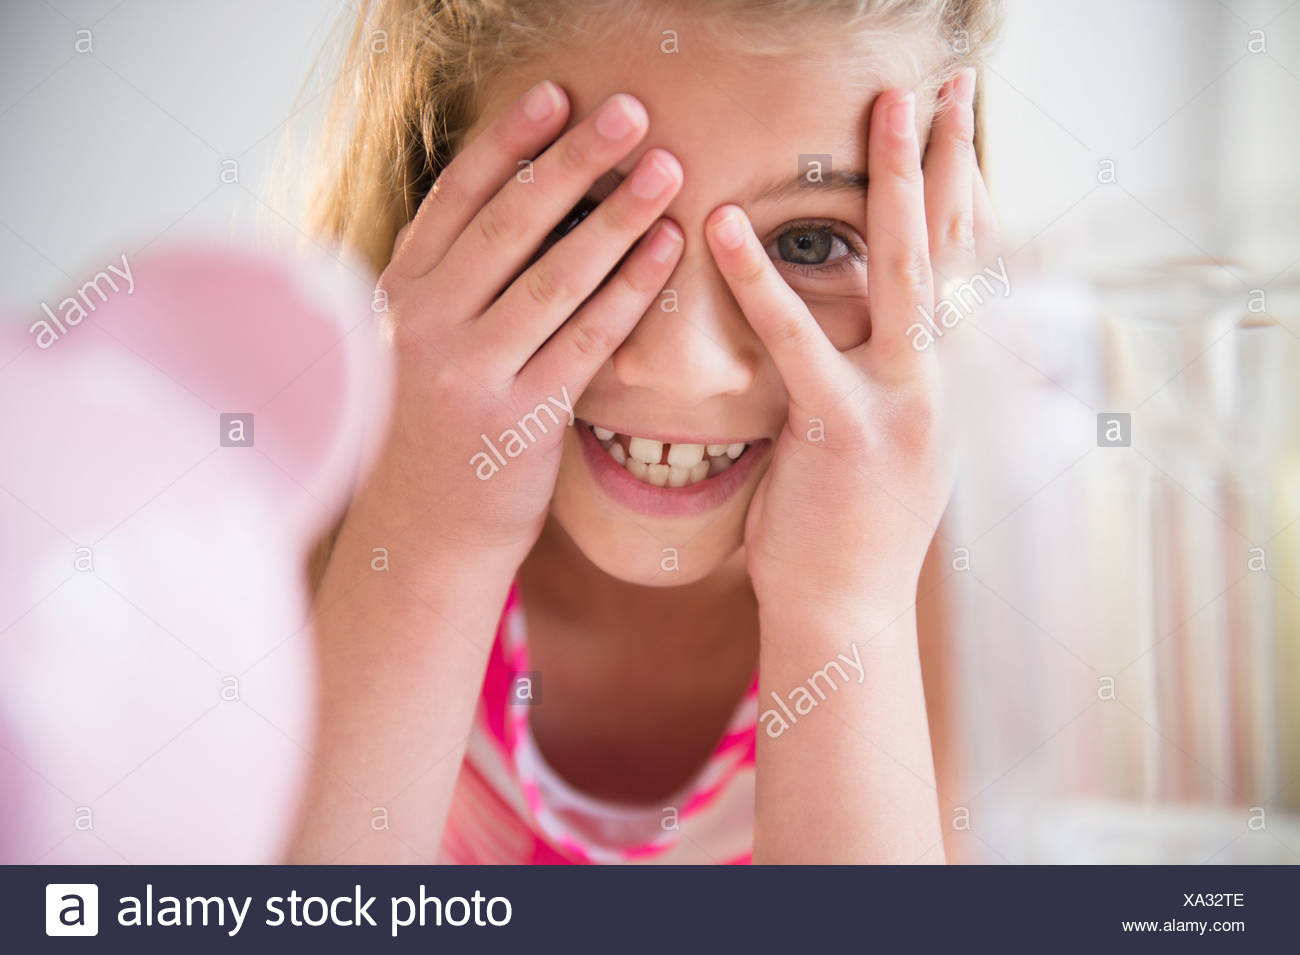 Girl (8-9) smiling and covering eyes - Stock Image